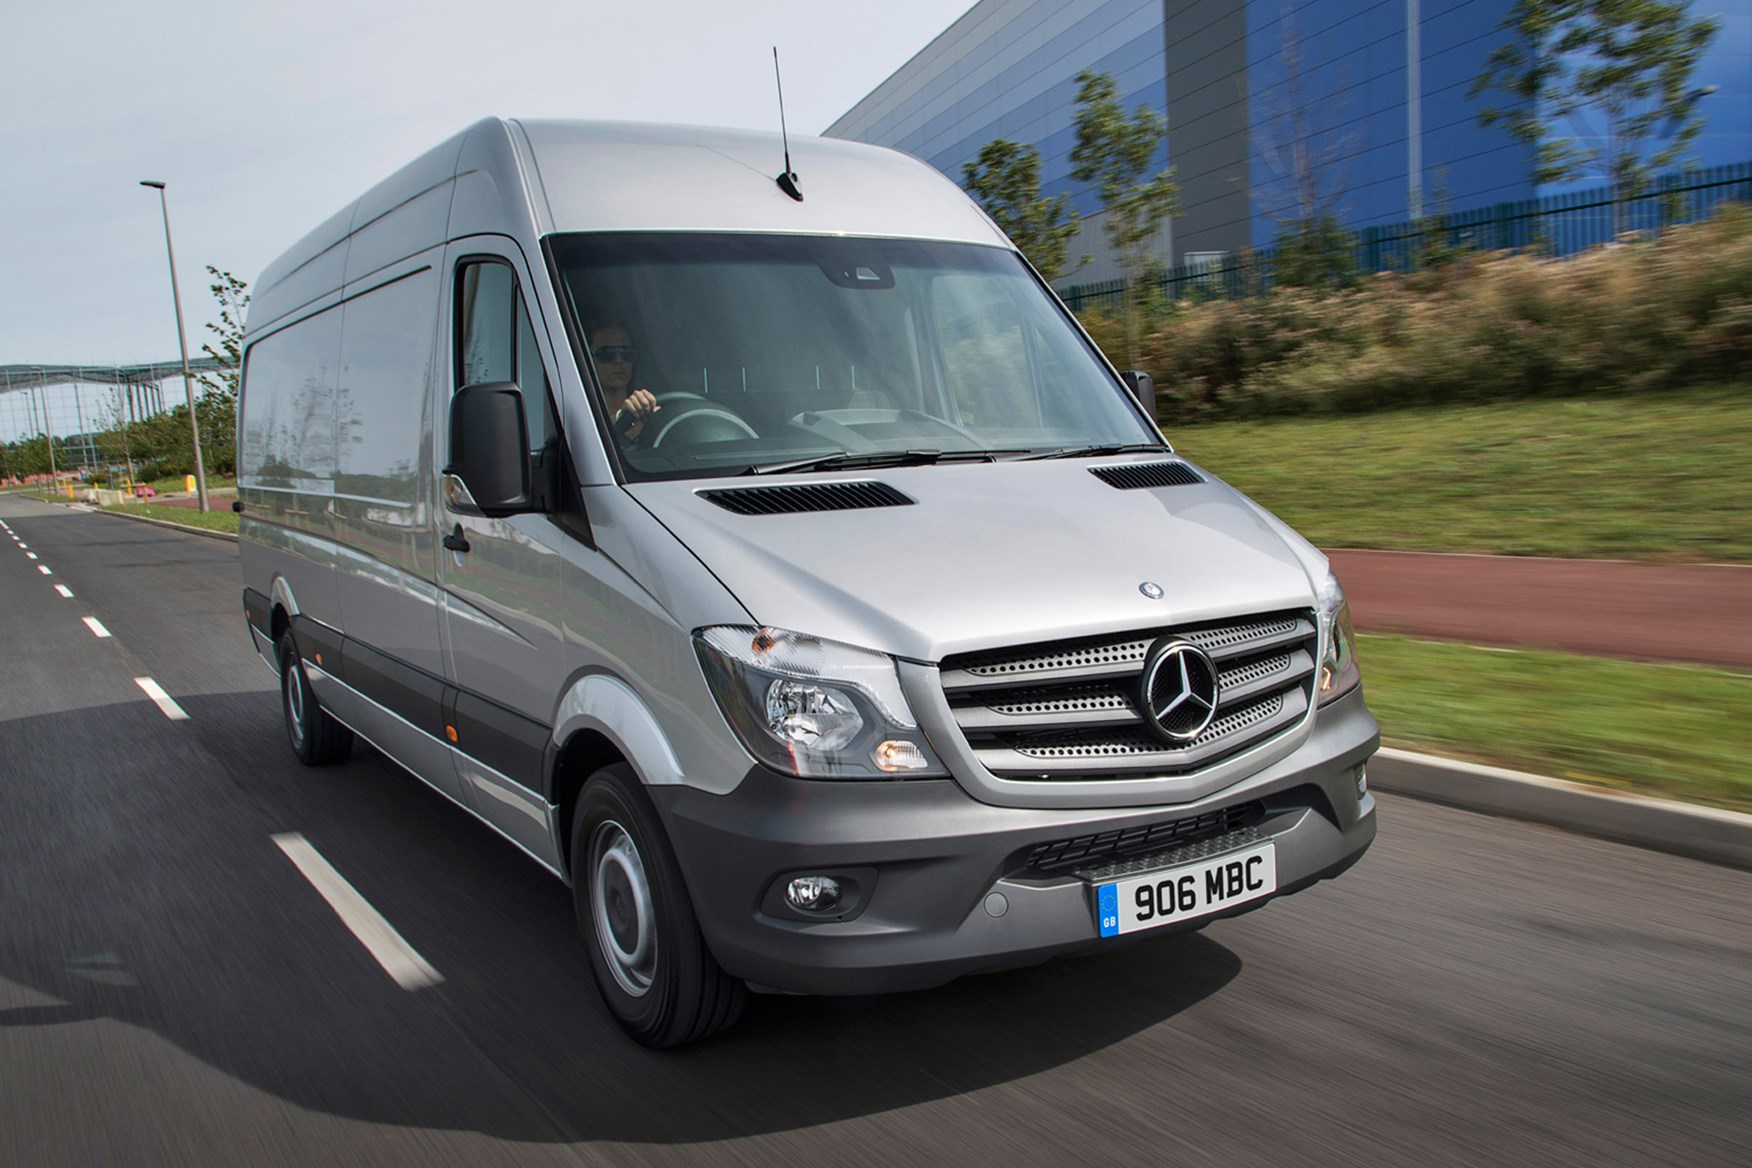 Mercedes-Benz Sprinter full review on Parkers Vans - front exterior